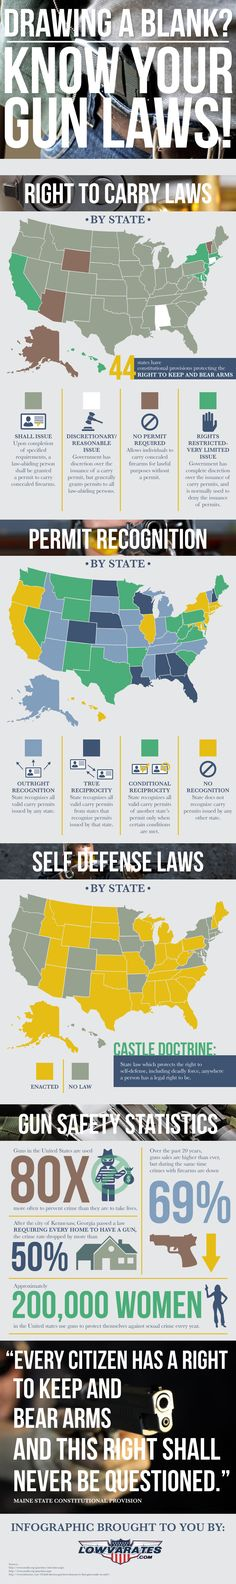 Quick reference Gun Laws by state - Make sure you always double check with stuff like this